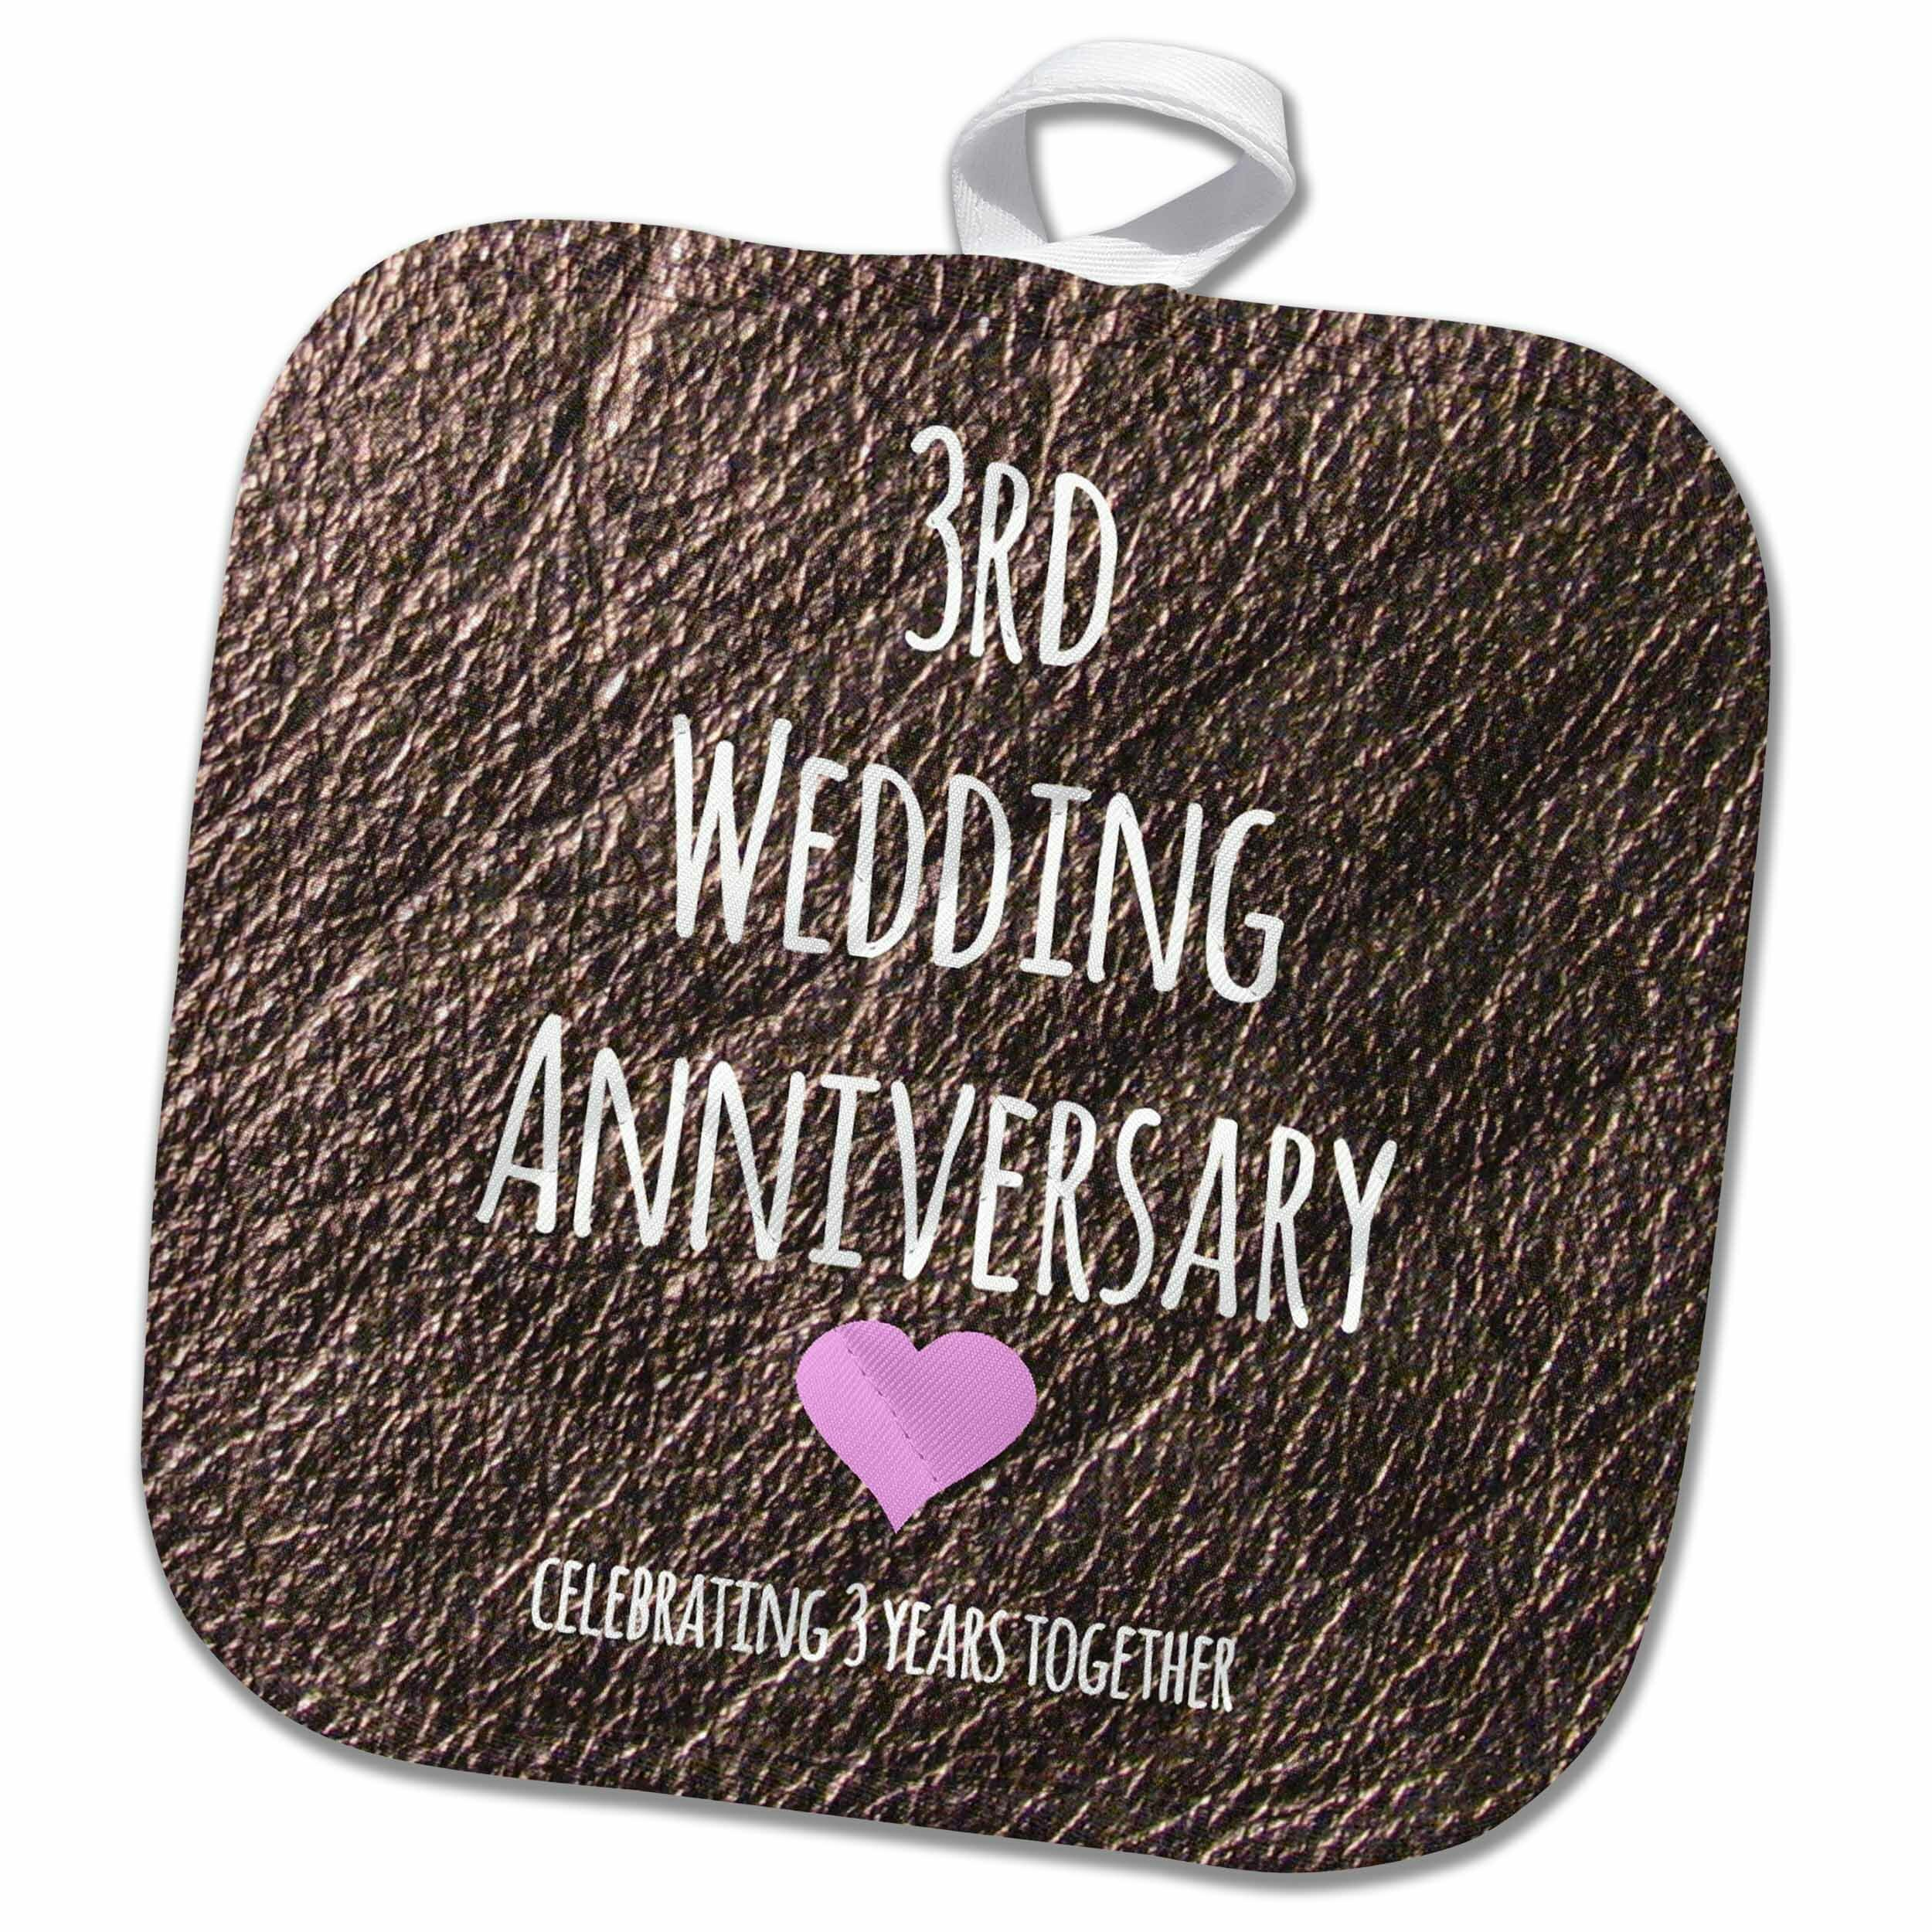 What Is 3Rd Wedding Anniversary Gift